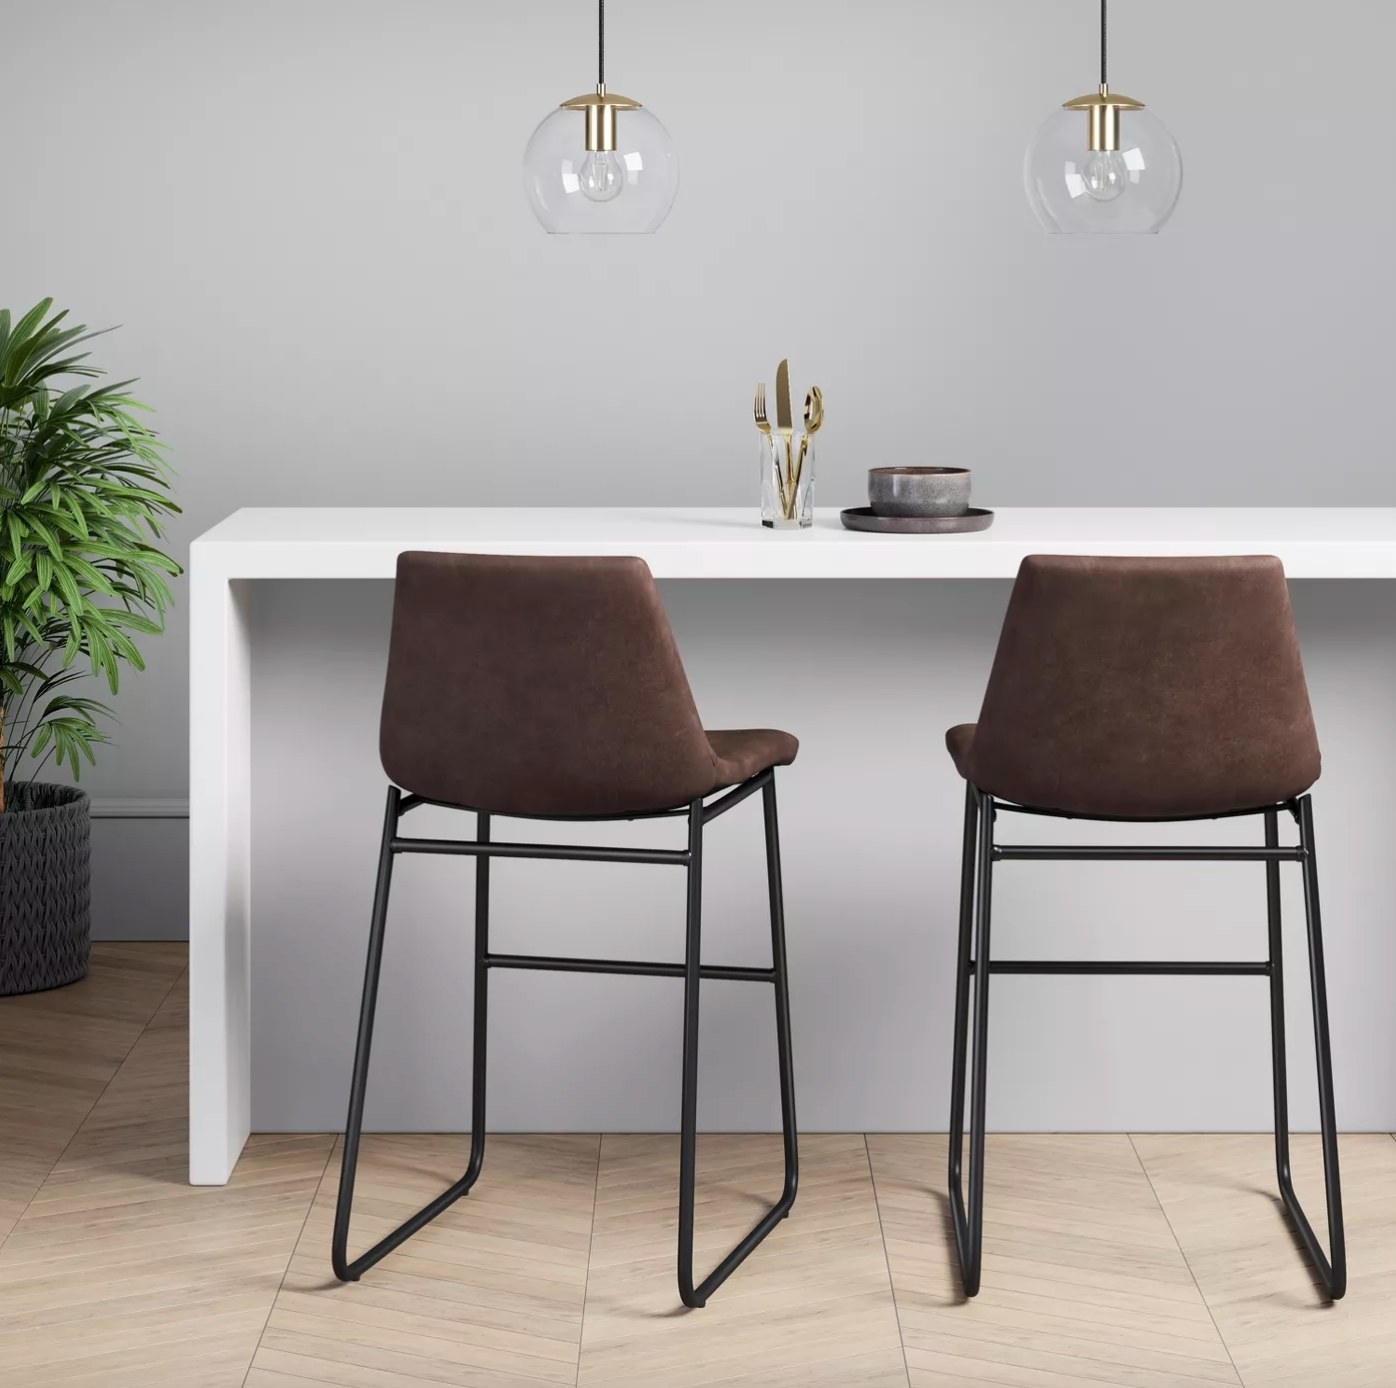 The faux leather bar stool in brown